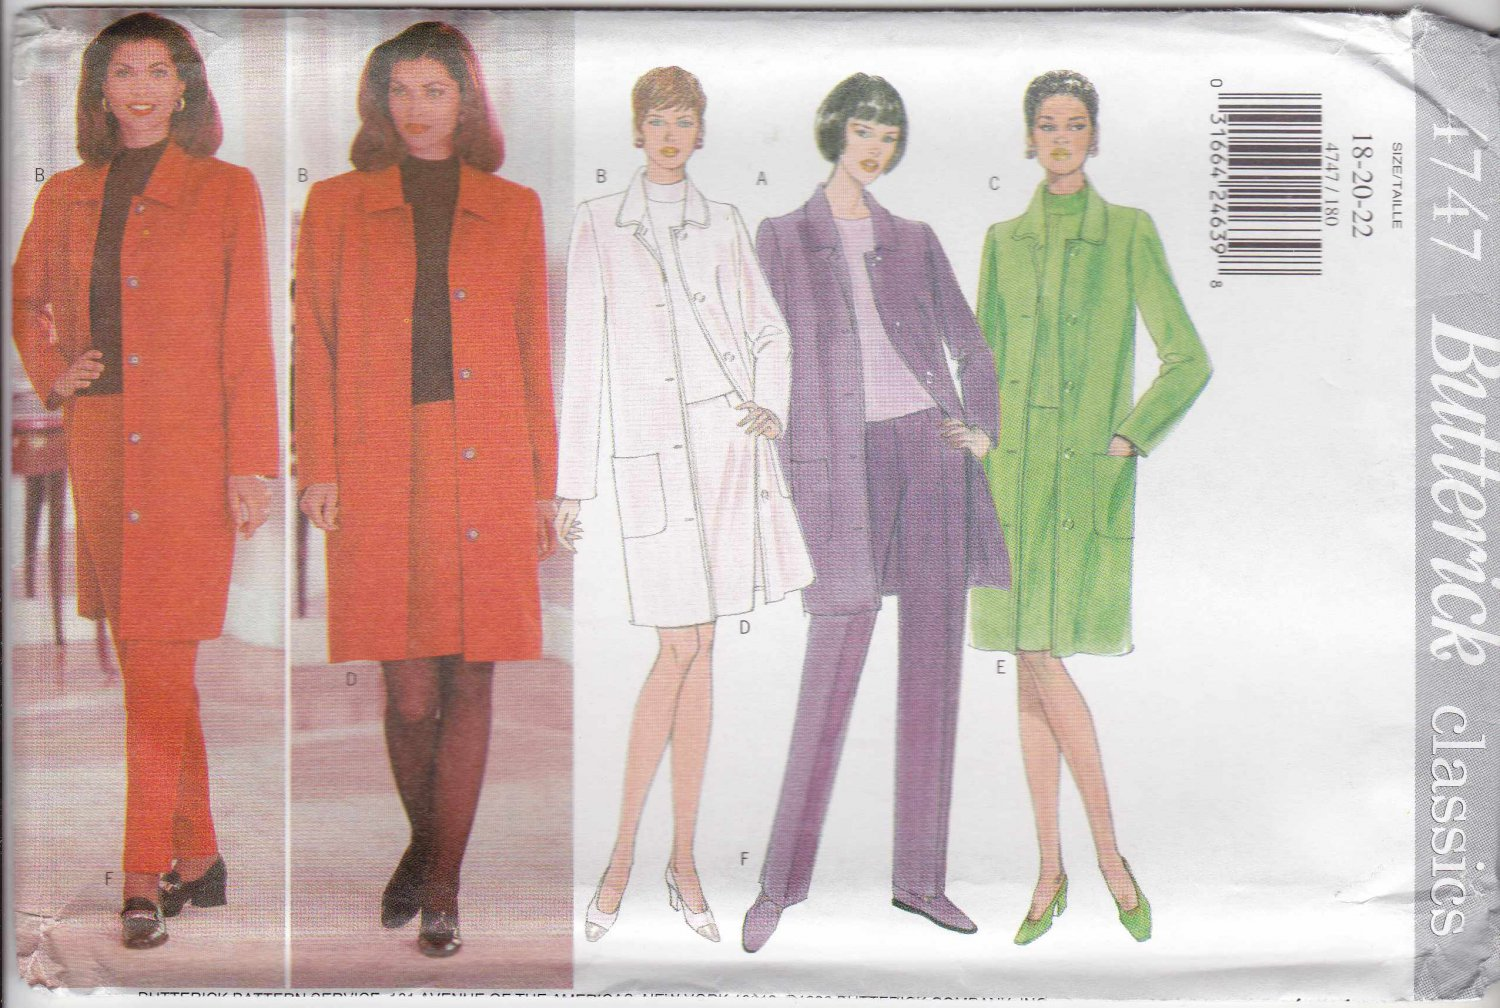 Butterick Sewing Pattern 4747 Misses Size 18-20-22 Easy Classic Wardrobe Jacket Top Skirt Pants